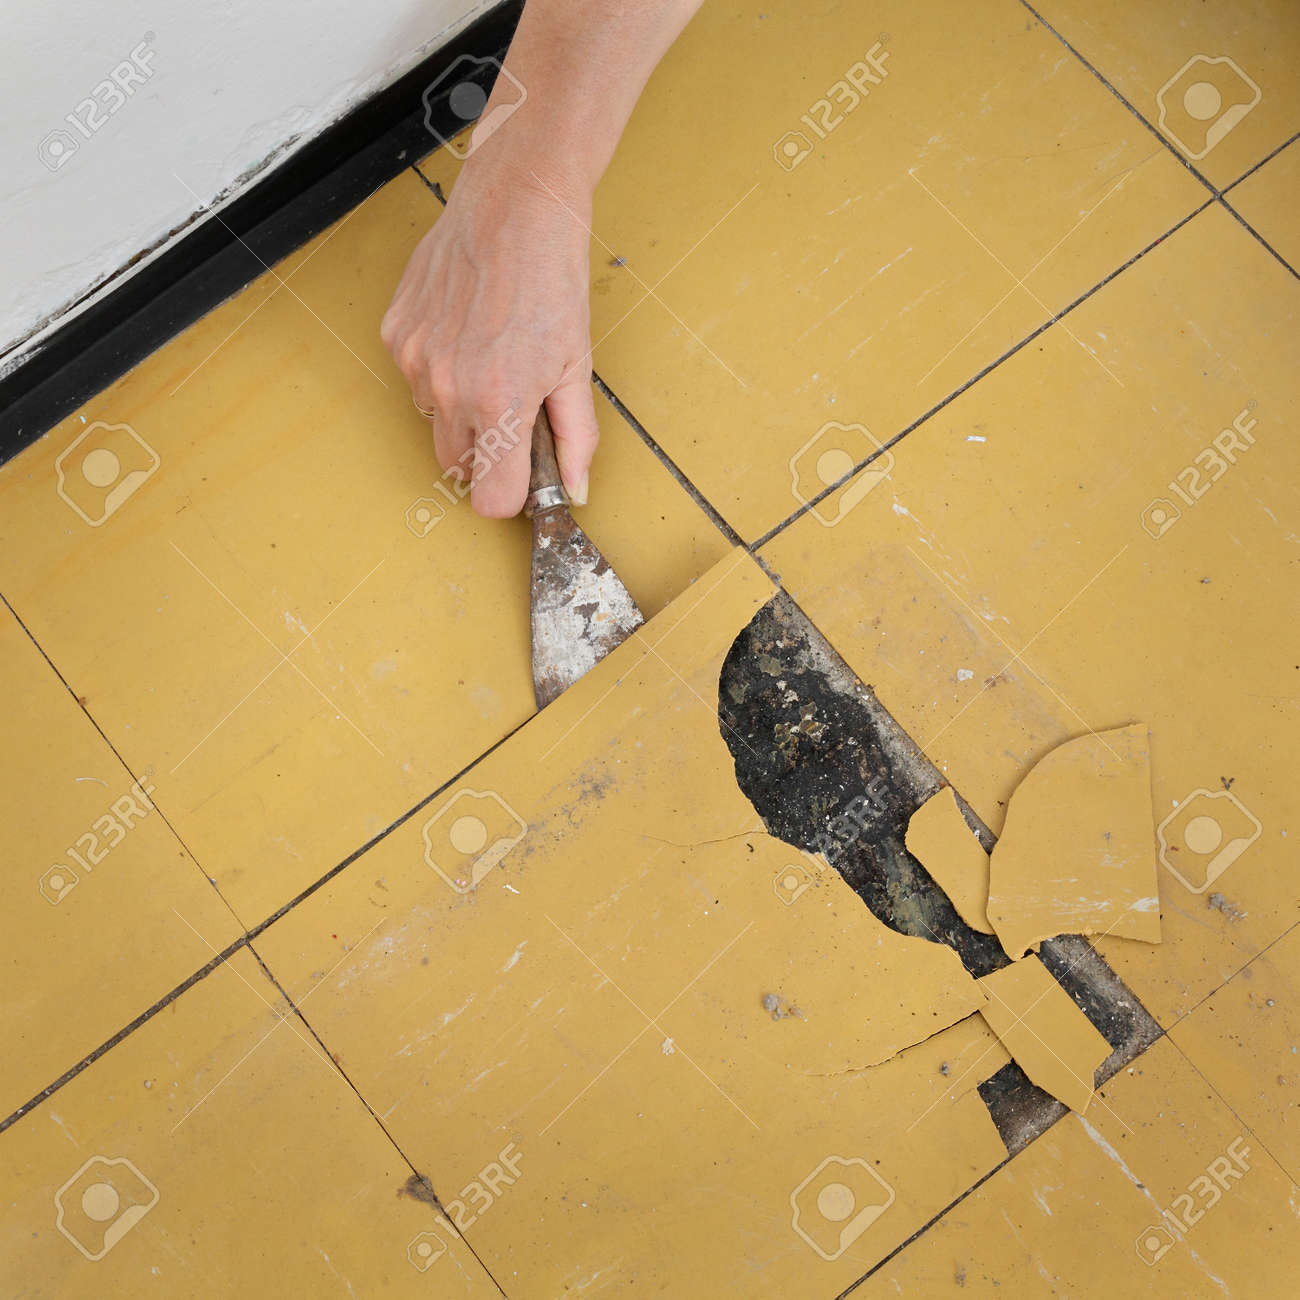 Worker Removing Old Vinyl Tiles From Kitchen Floor Using Spatula